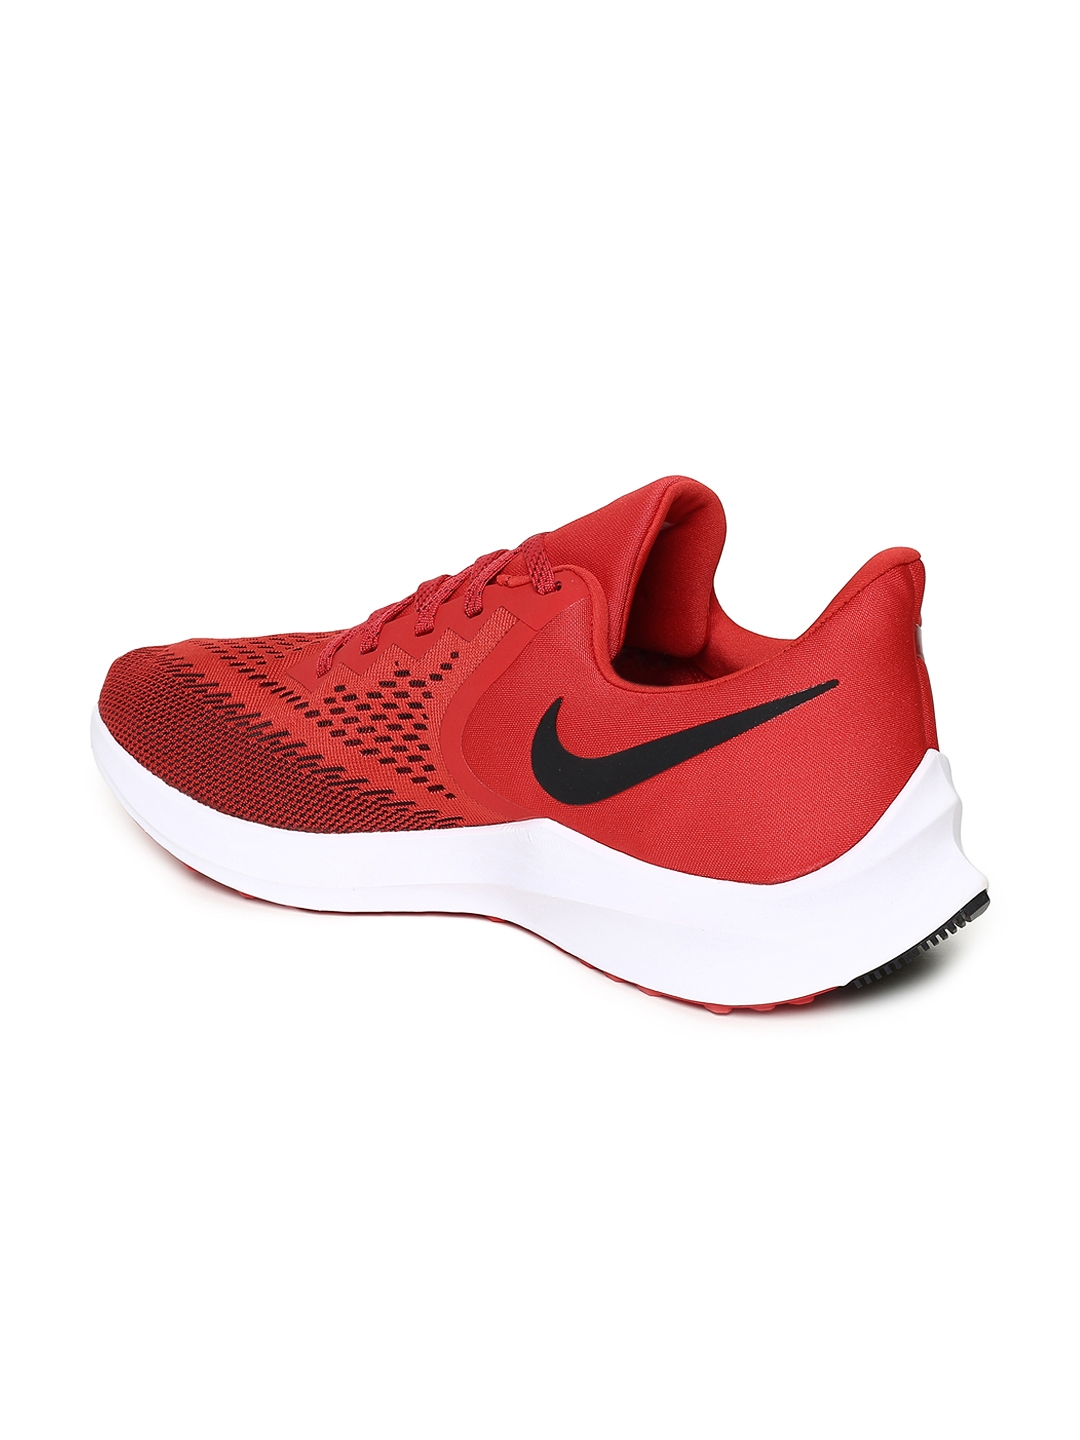 timeless design 1fe2c 28e8a Nike Men Red ZOOM WINFLO 6 Running Shoes